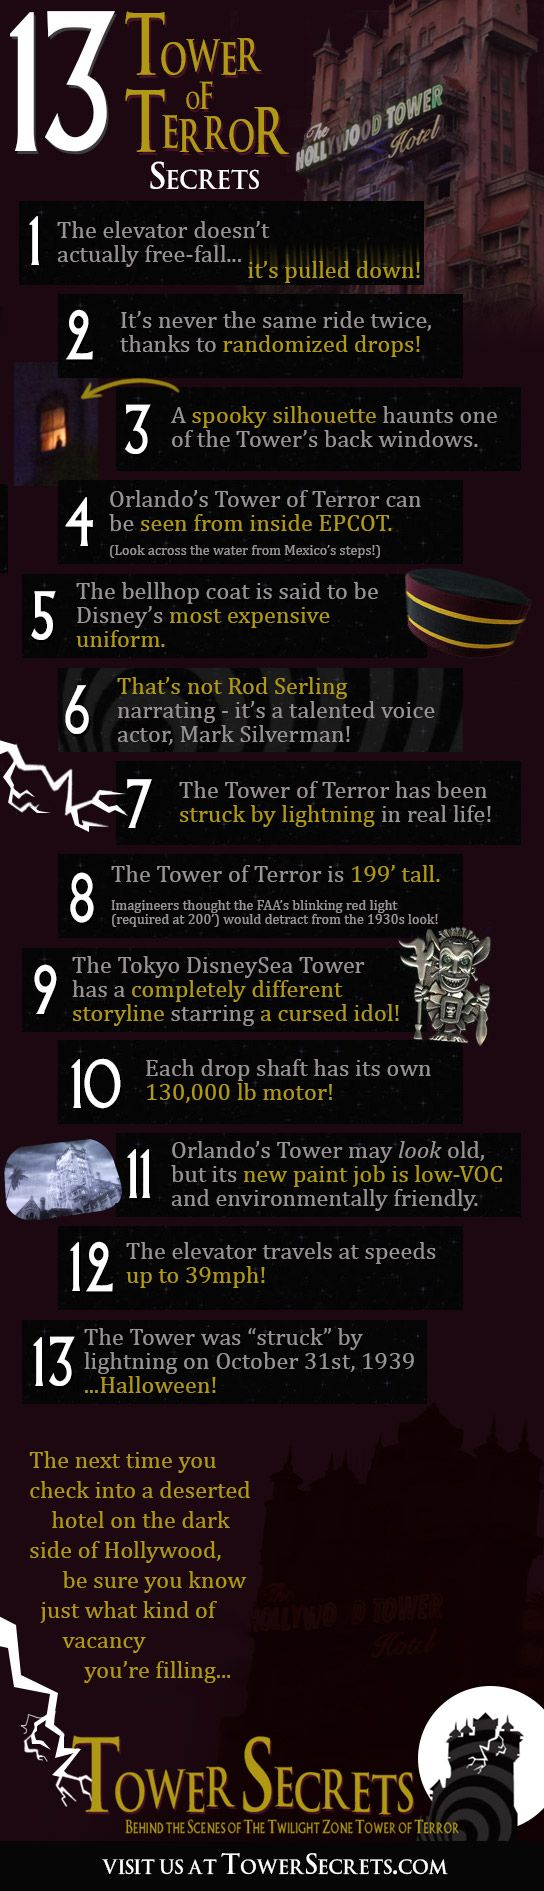 13 fun and spooky secrets about Disney's thrilling Tower of Terror ride! Visit http://TowerSecrets.com for an inside look at our favorite haunted hotel!     #Disney #TowerOfTerror